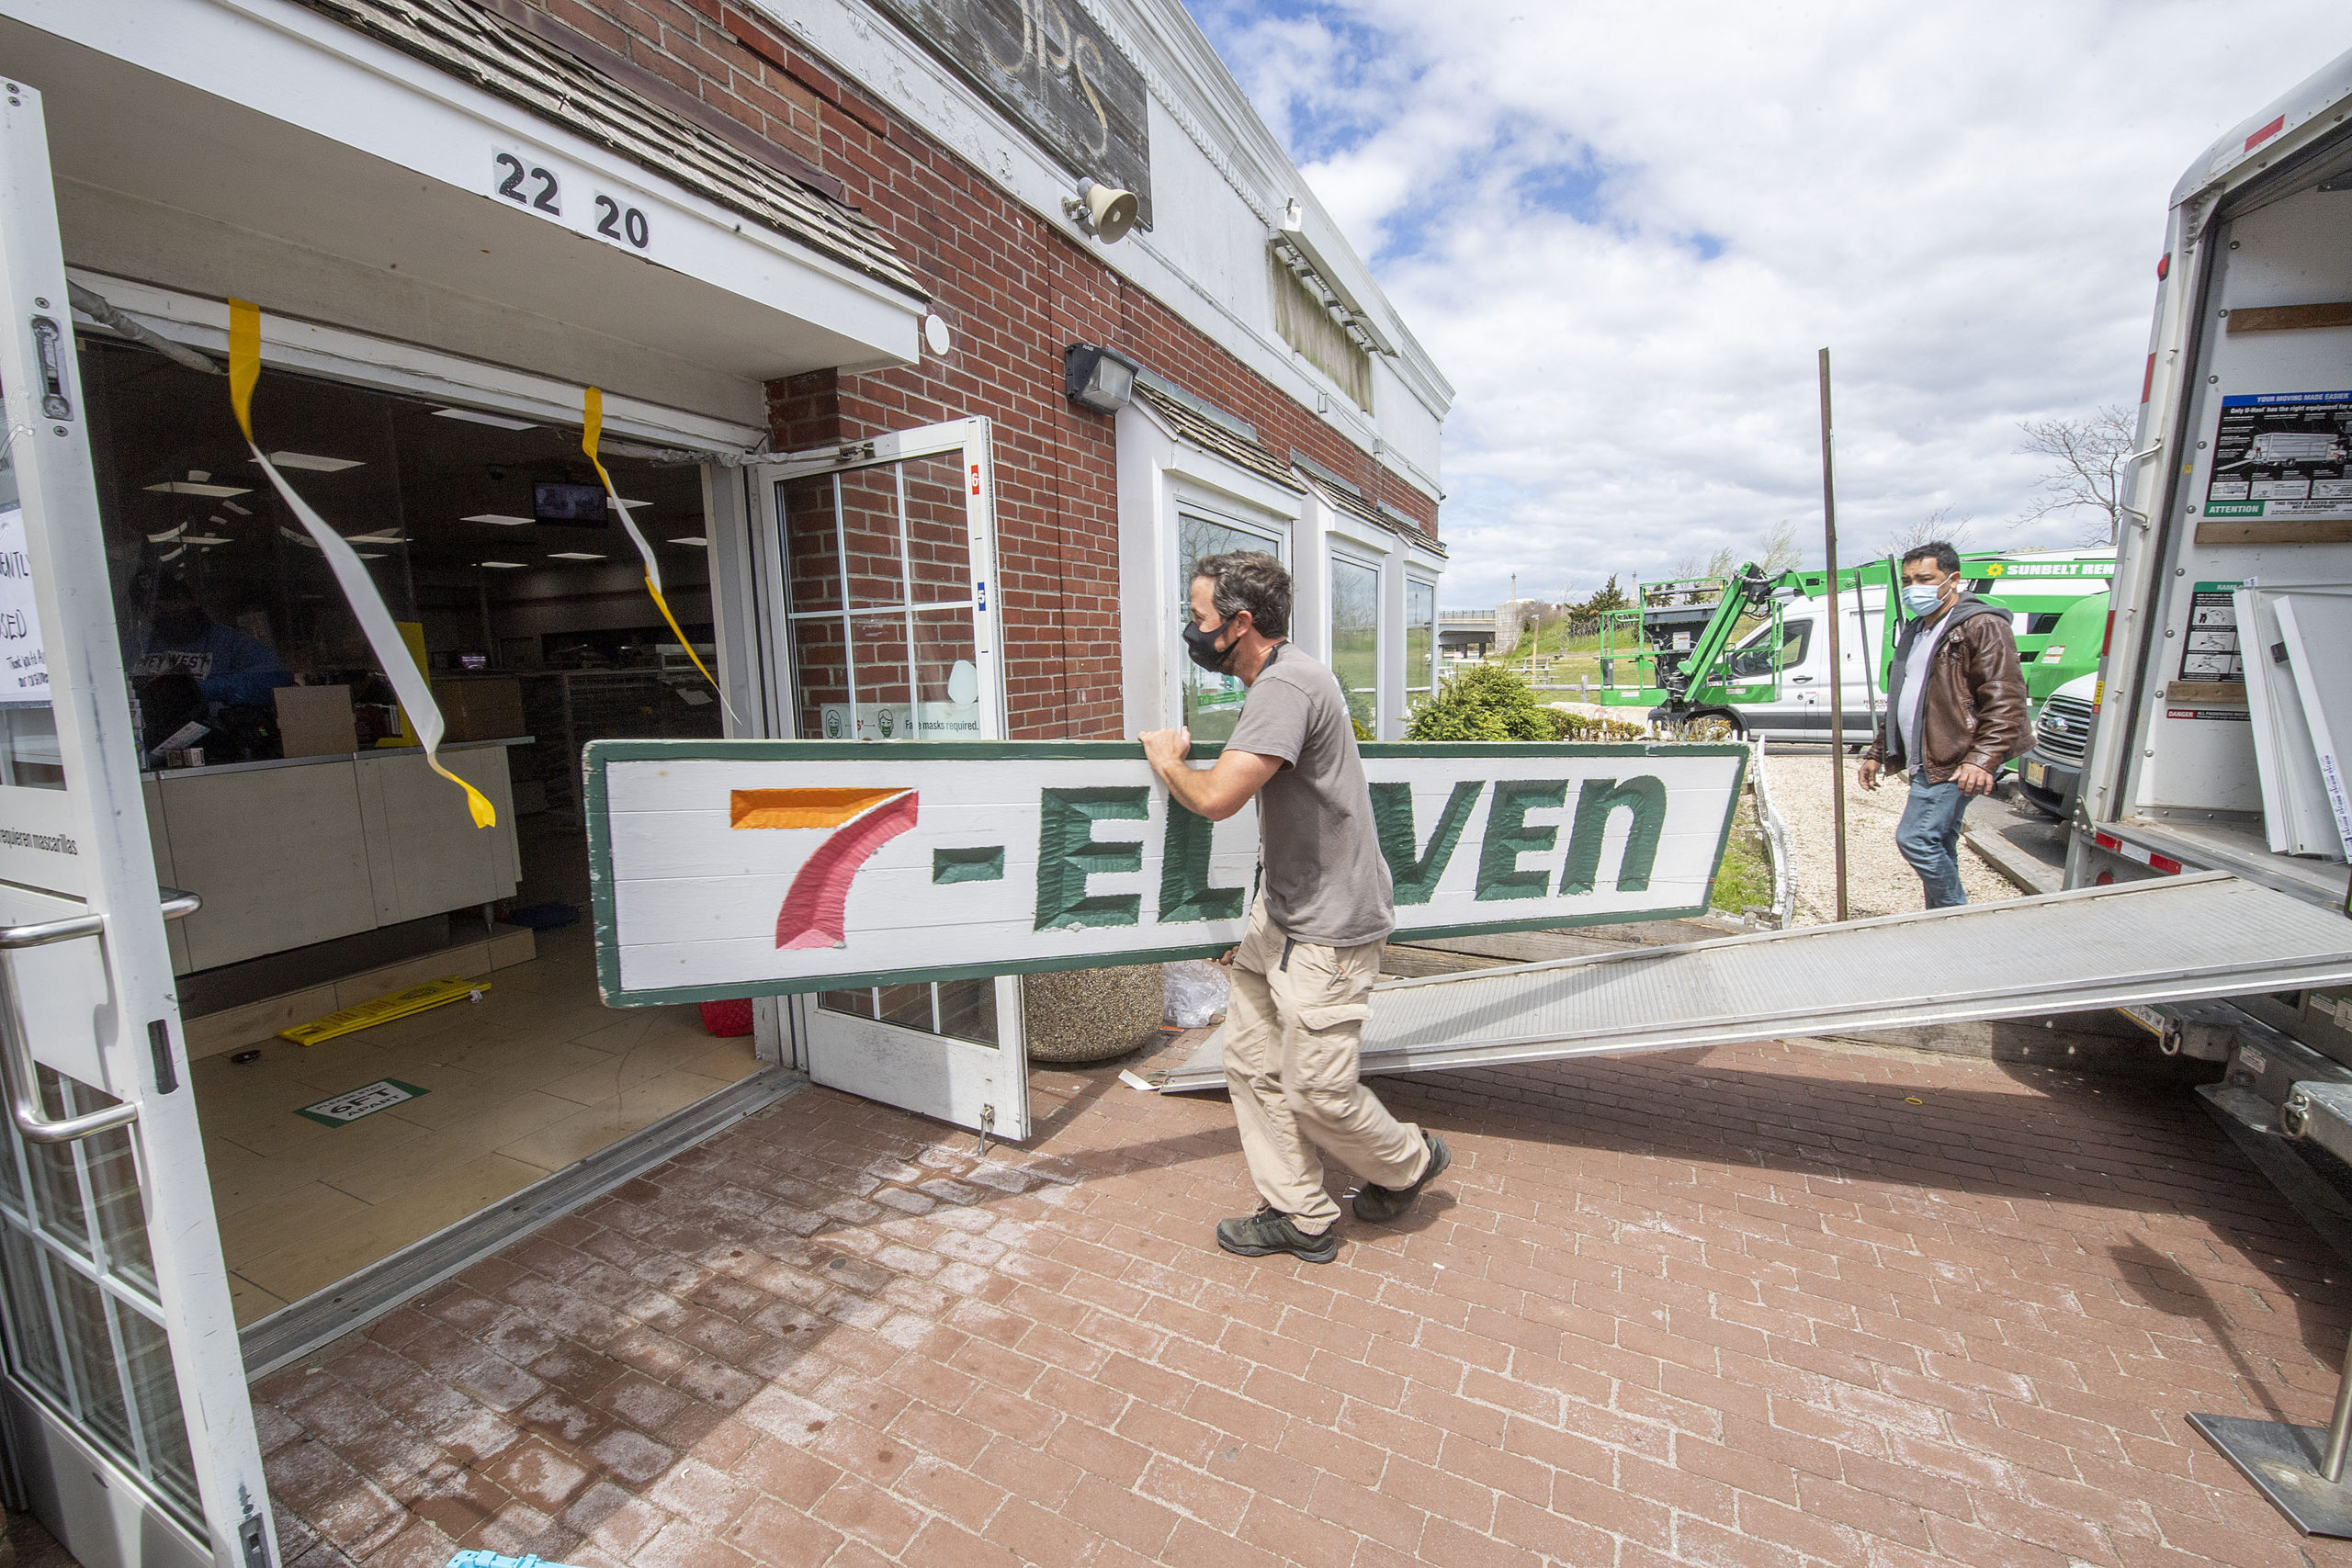 The sign above the 7-11 is taken down as the store was emptied and shut down on Friday. Michael Heller